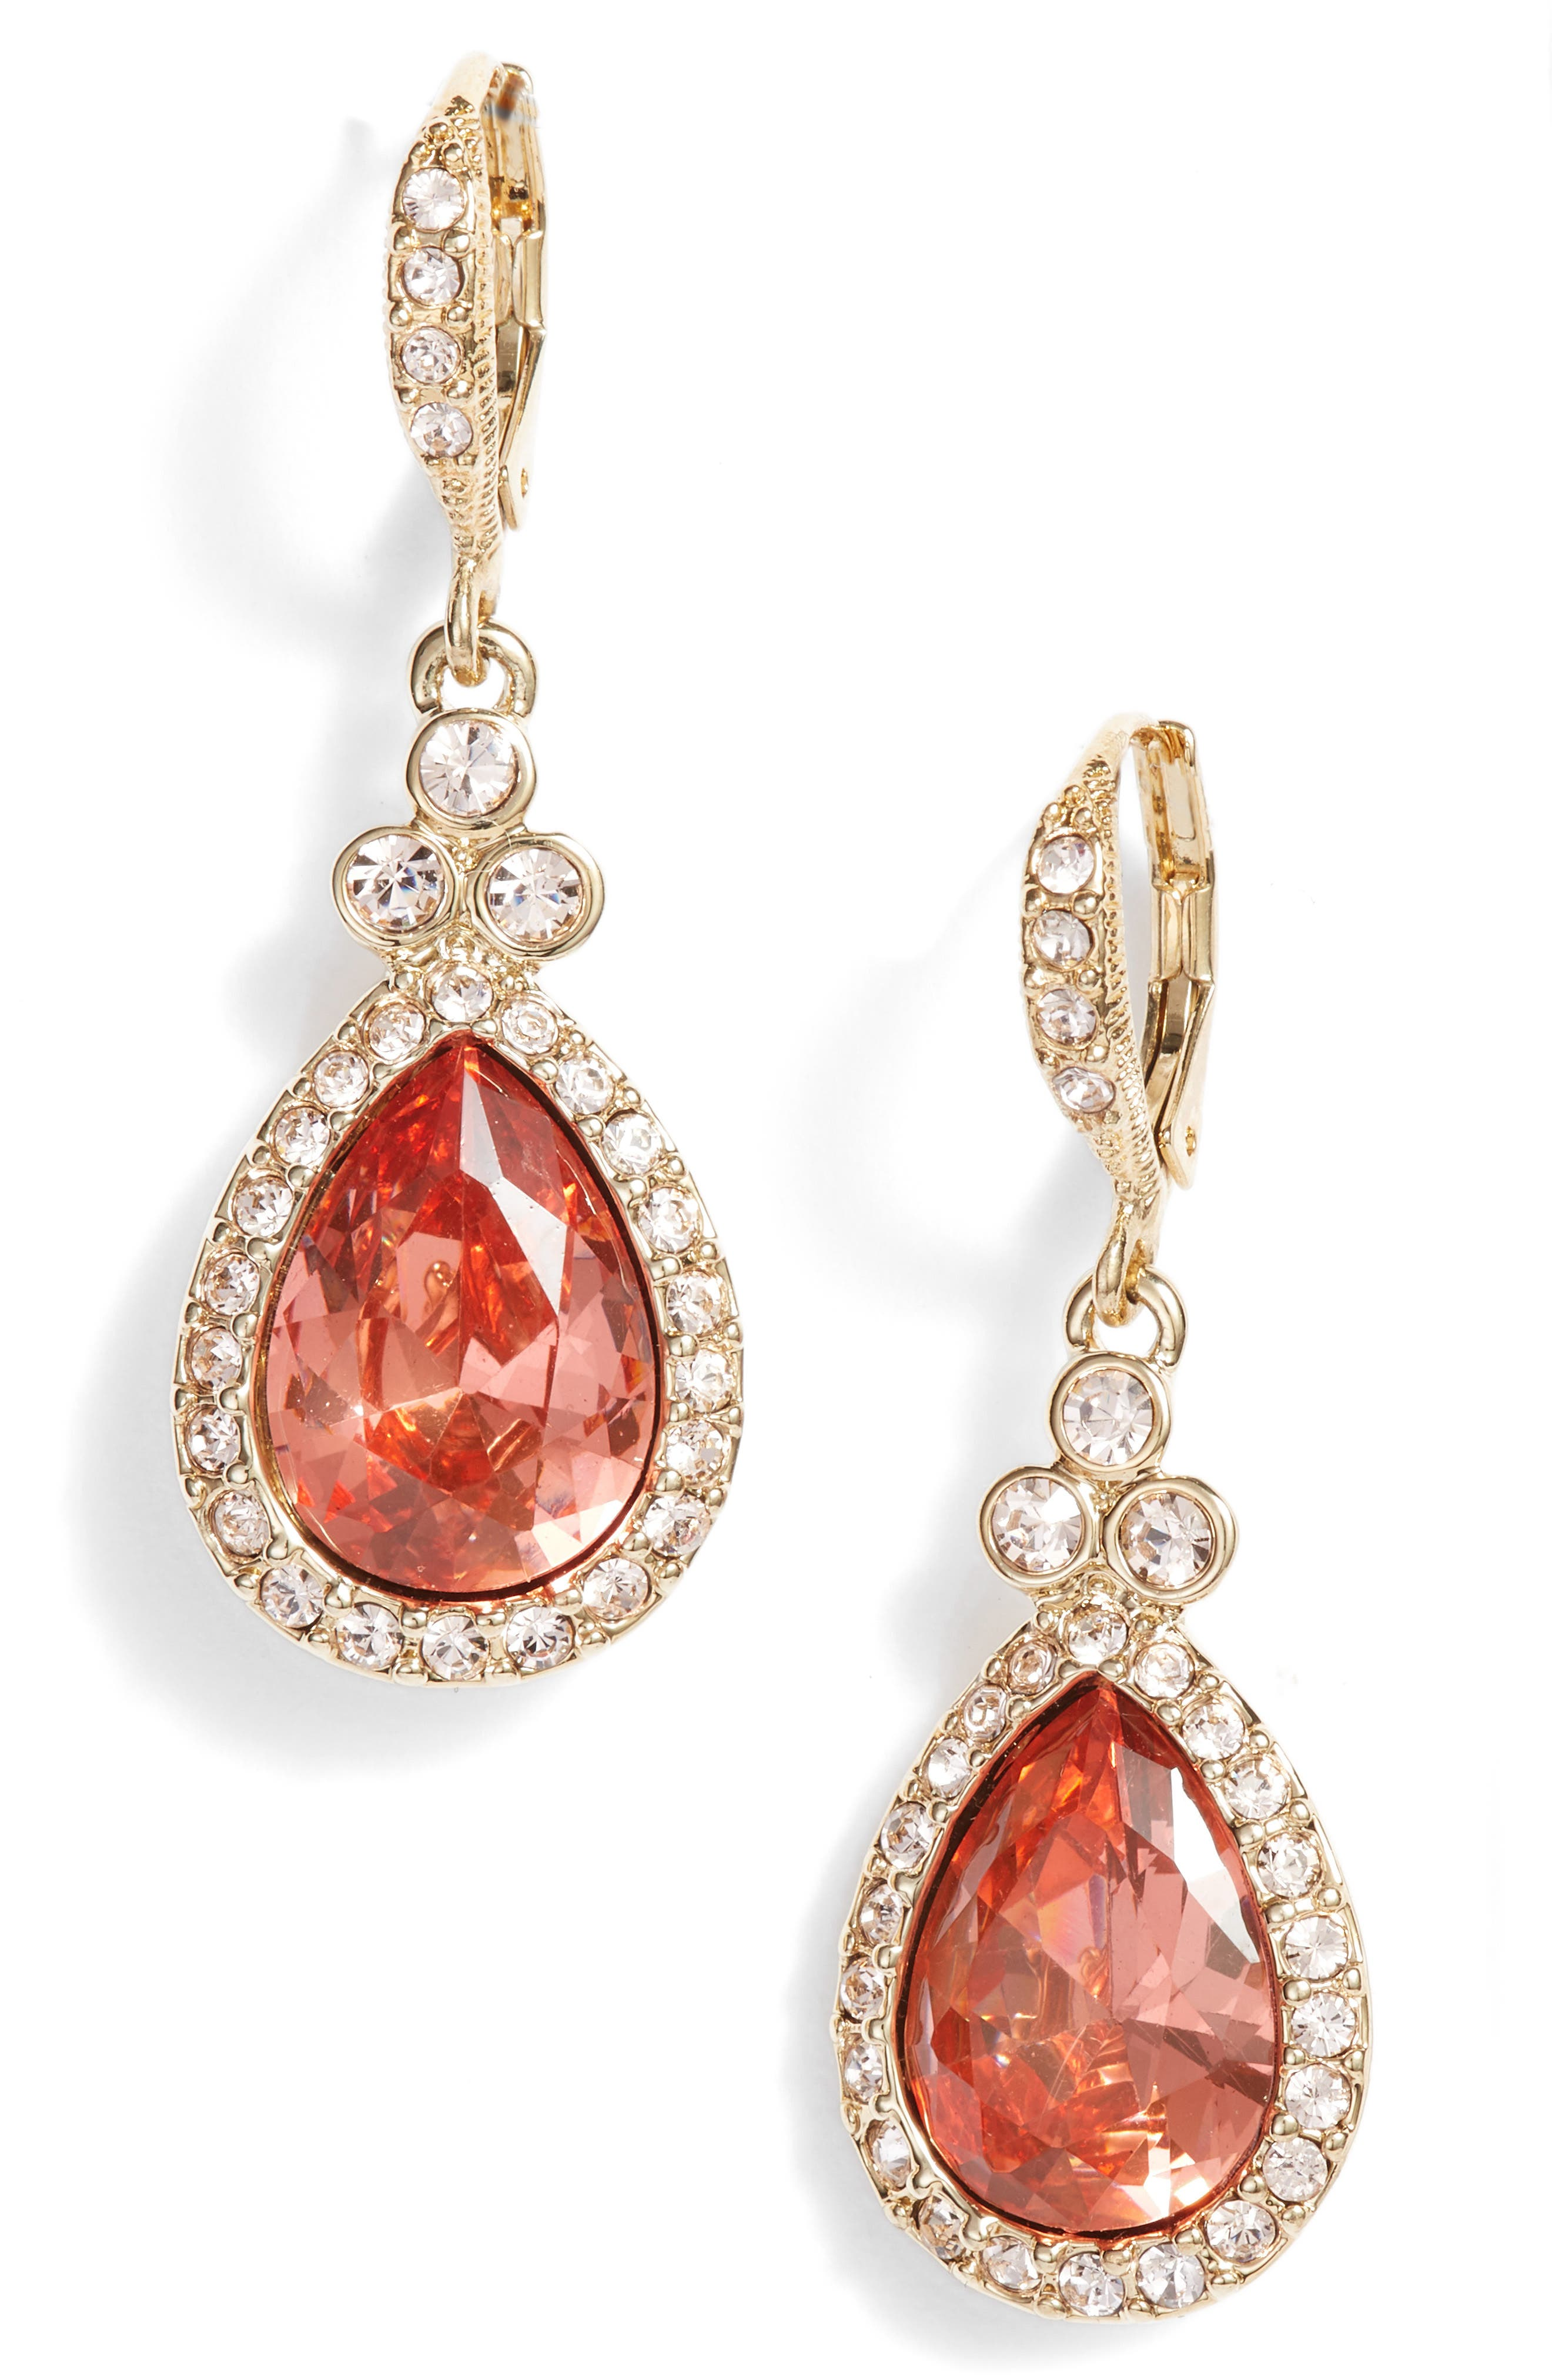 Pavé Pear Drop Earrings,                         Main,                         color, Gold/ Peach/ Silk